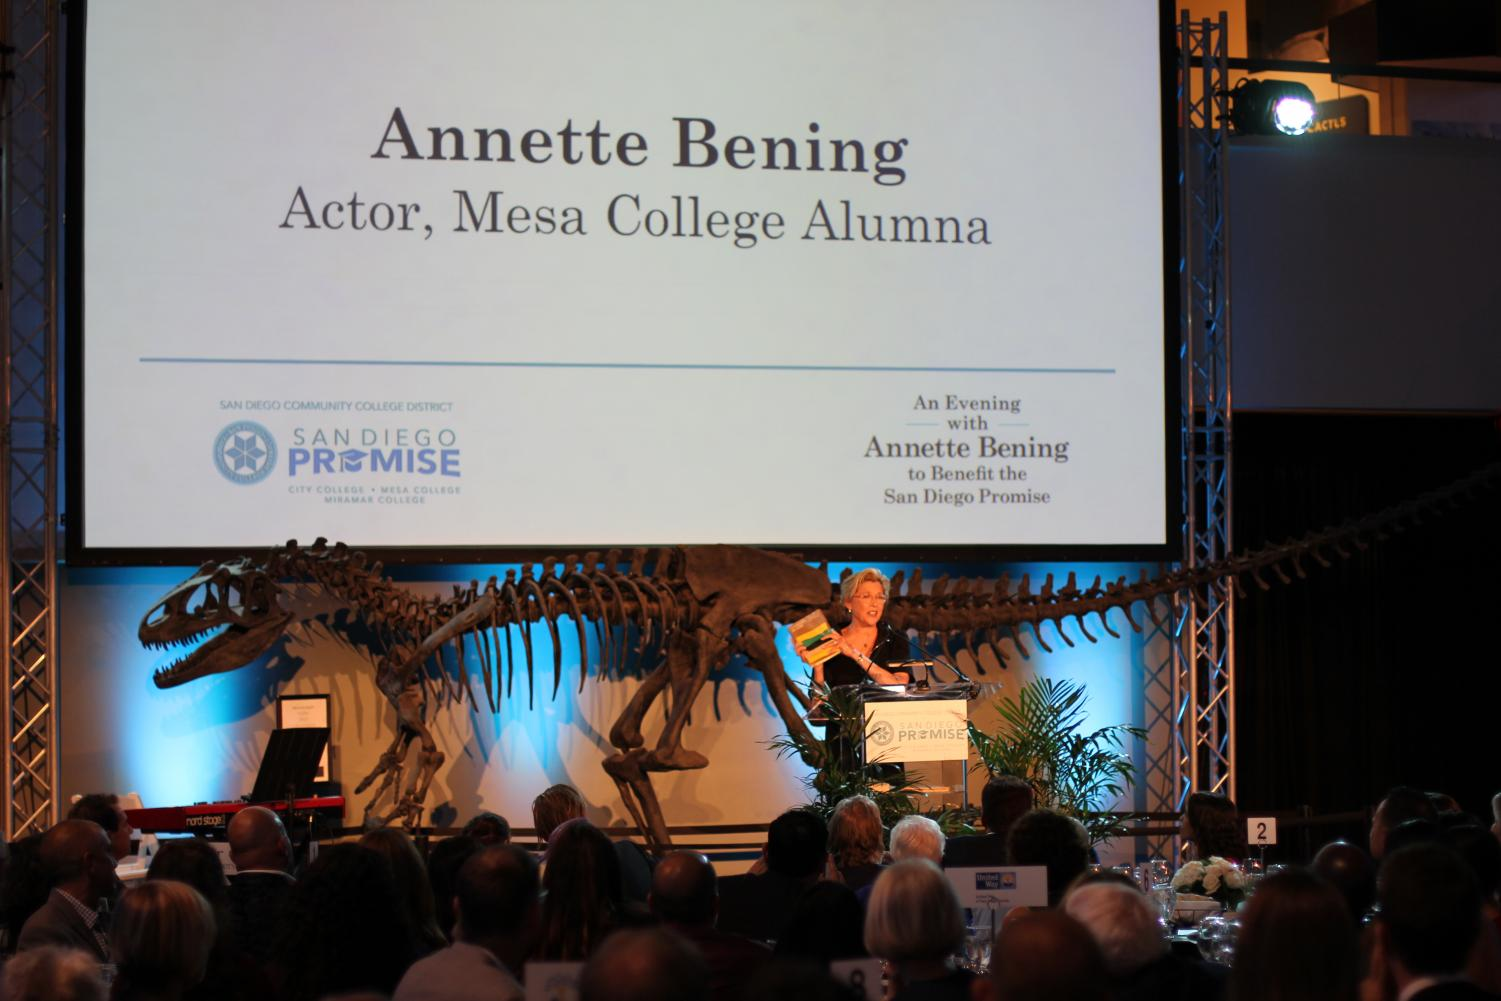 Annette Bening headlined an event that raised over $120,000 for the San Diego Promise. Photo by Jonny Rico